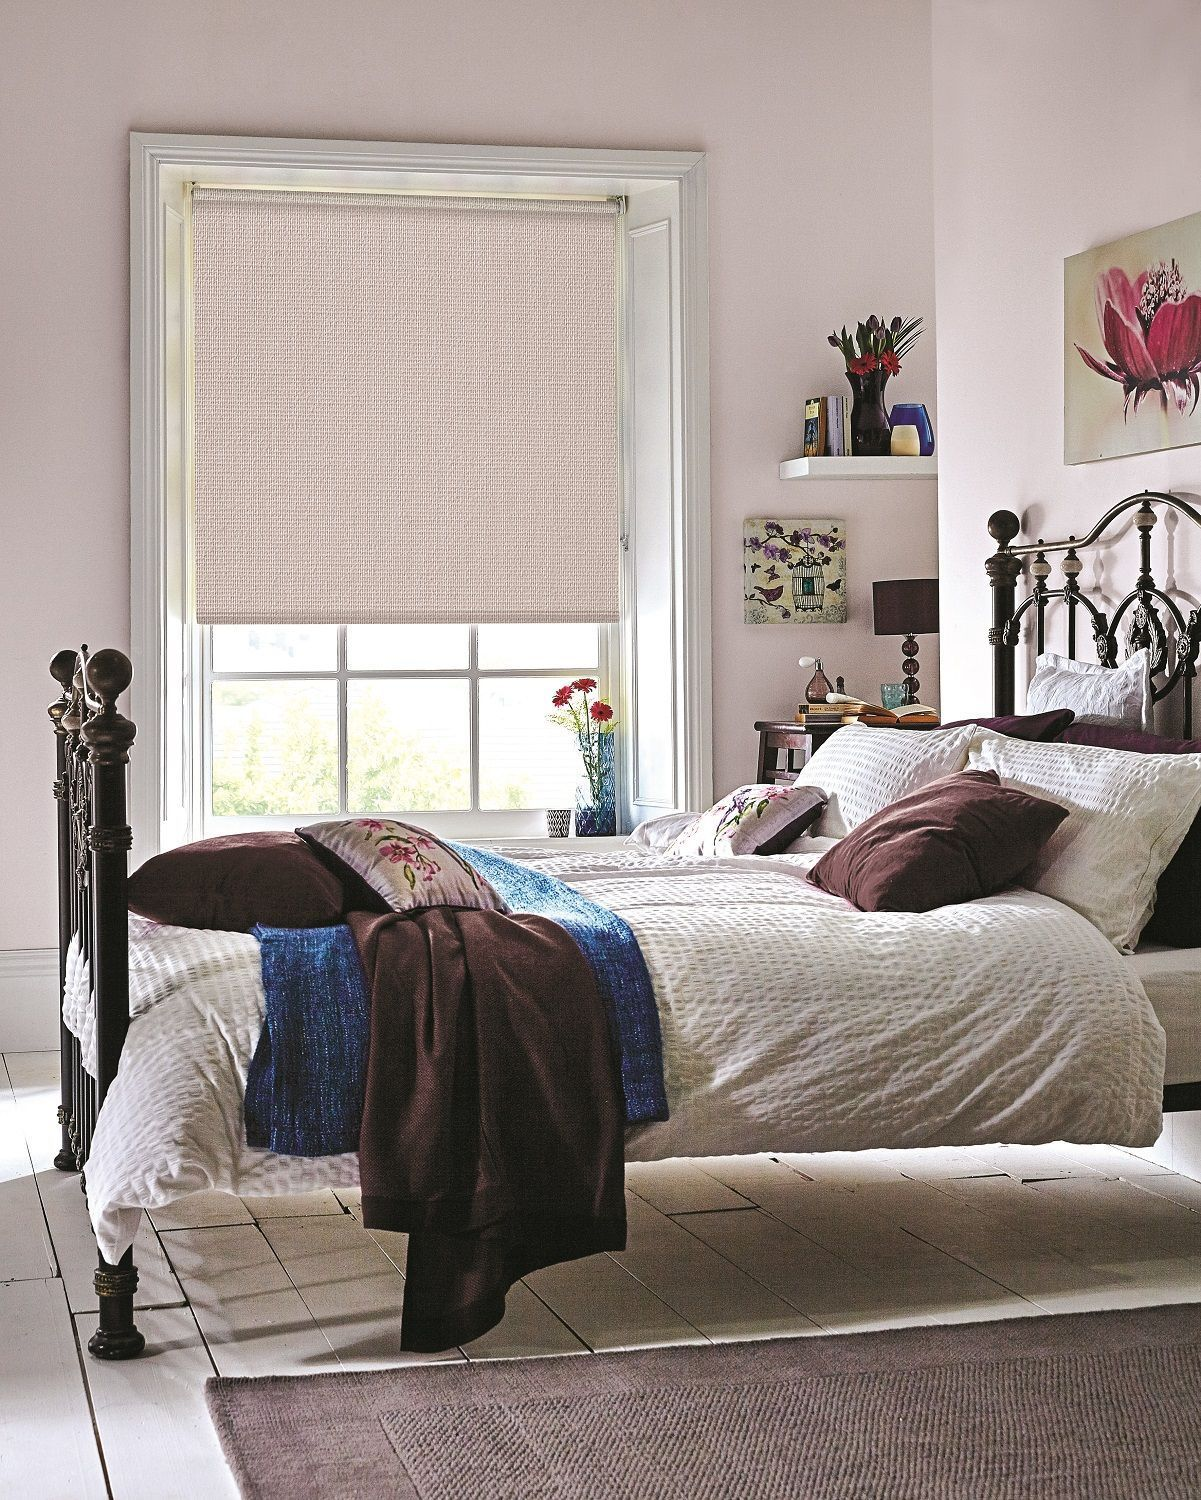 Rianna Rose Dazzle Roller Blinds From Apollo Blinds. Best Blinds For  Bedrooms. Neutral Blinds. Roller Blinds. Bedroom Blinds. Contemporary  Window Dressing ...